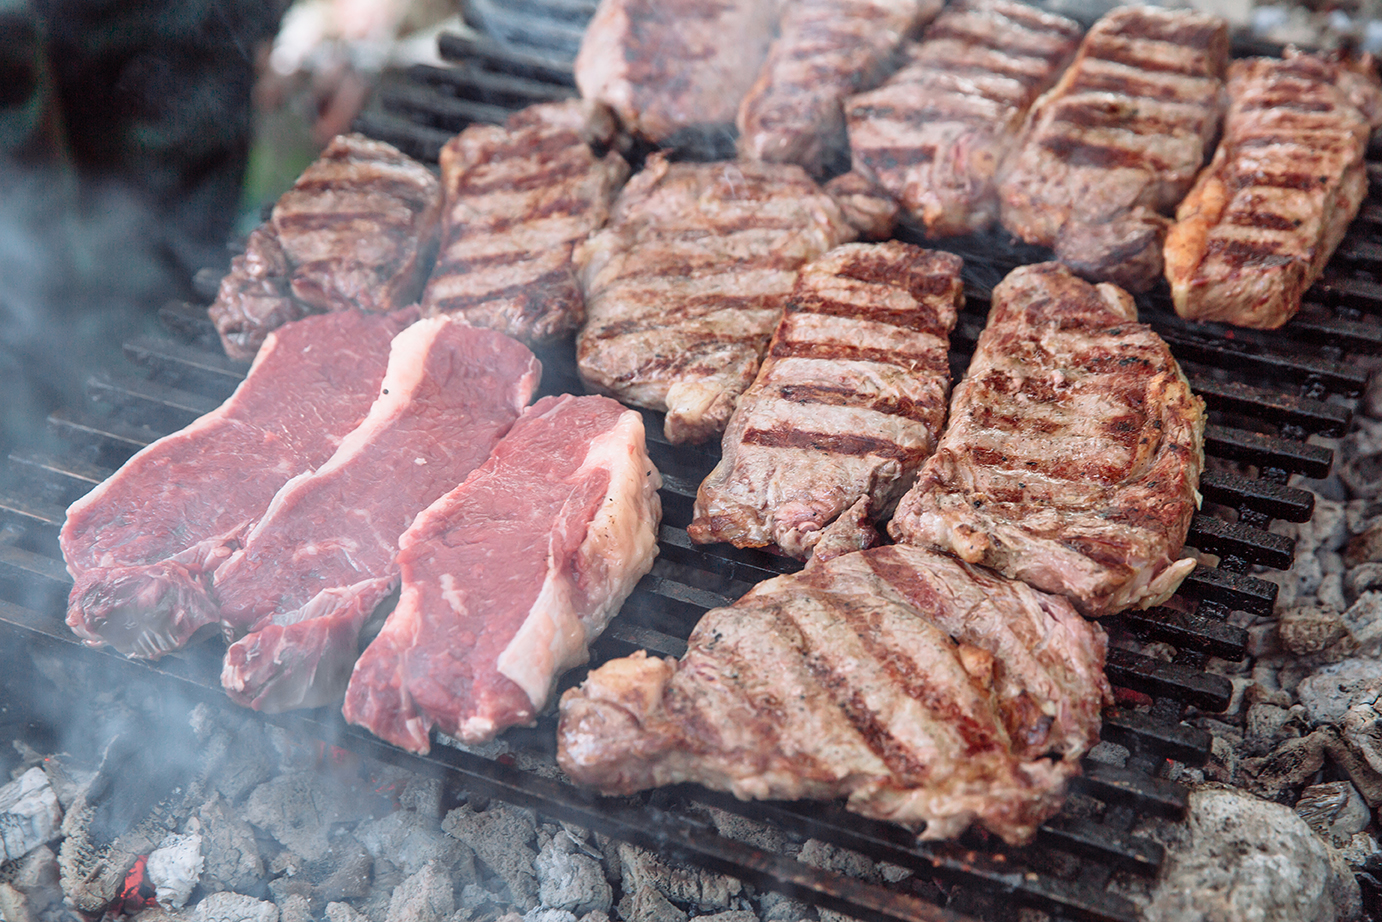 Lots of grilled steak.|protein-restriction-effects-diagram|protein